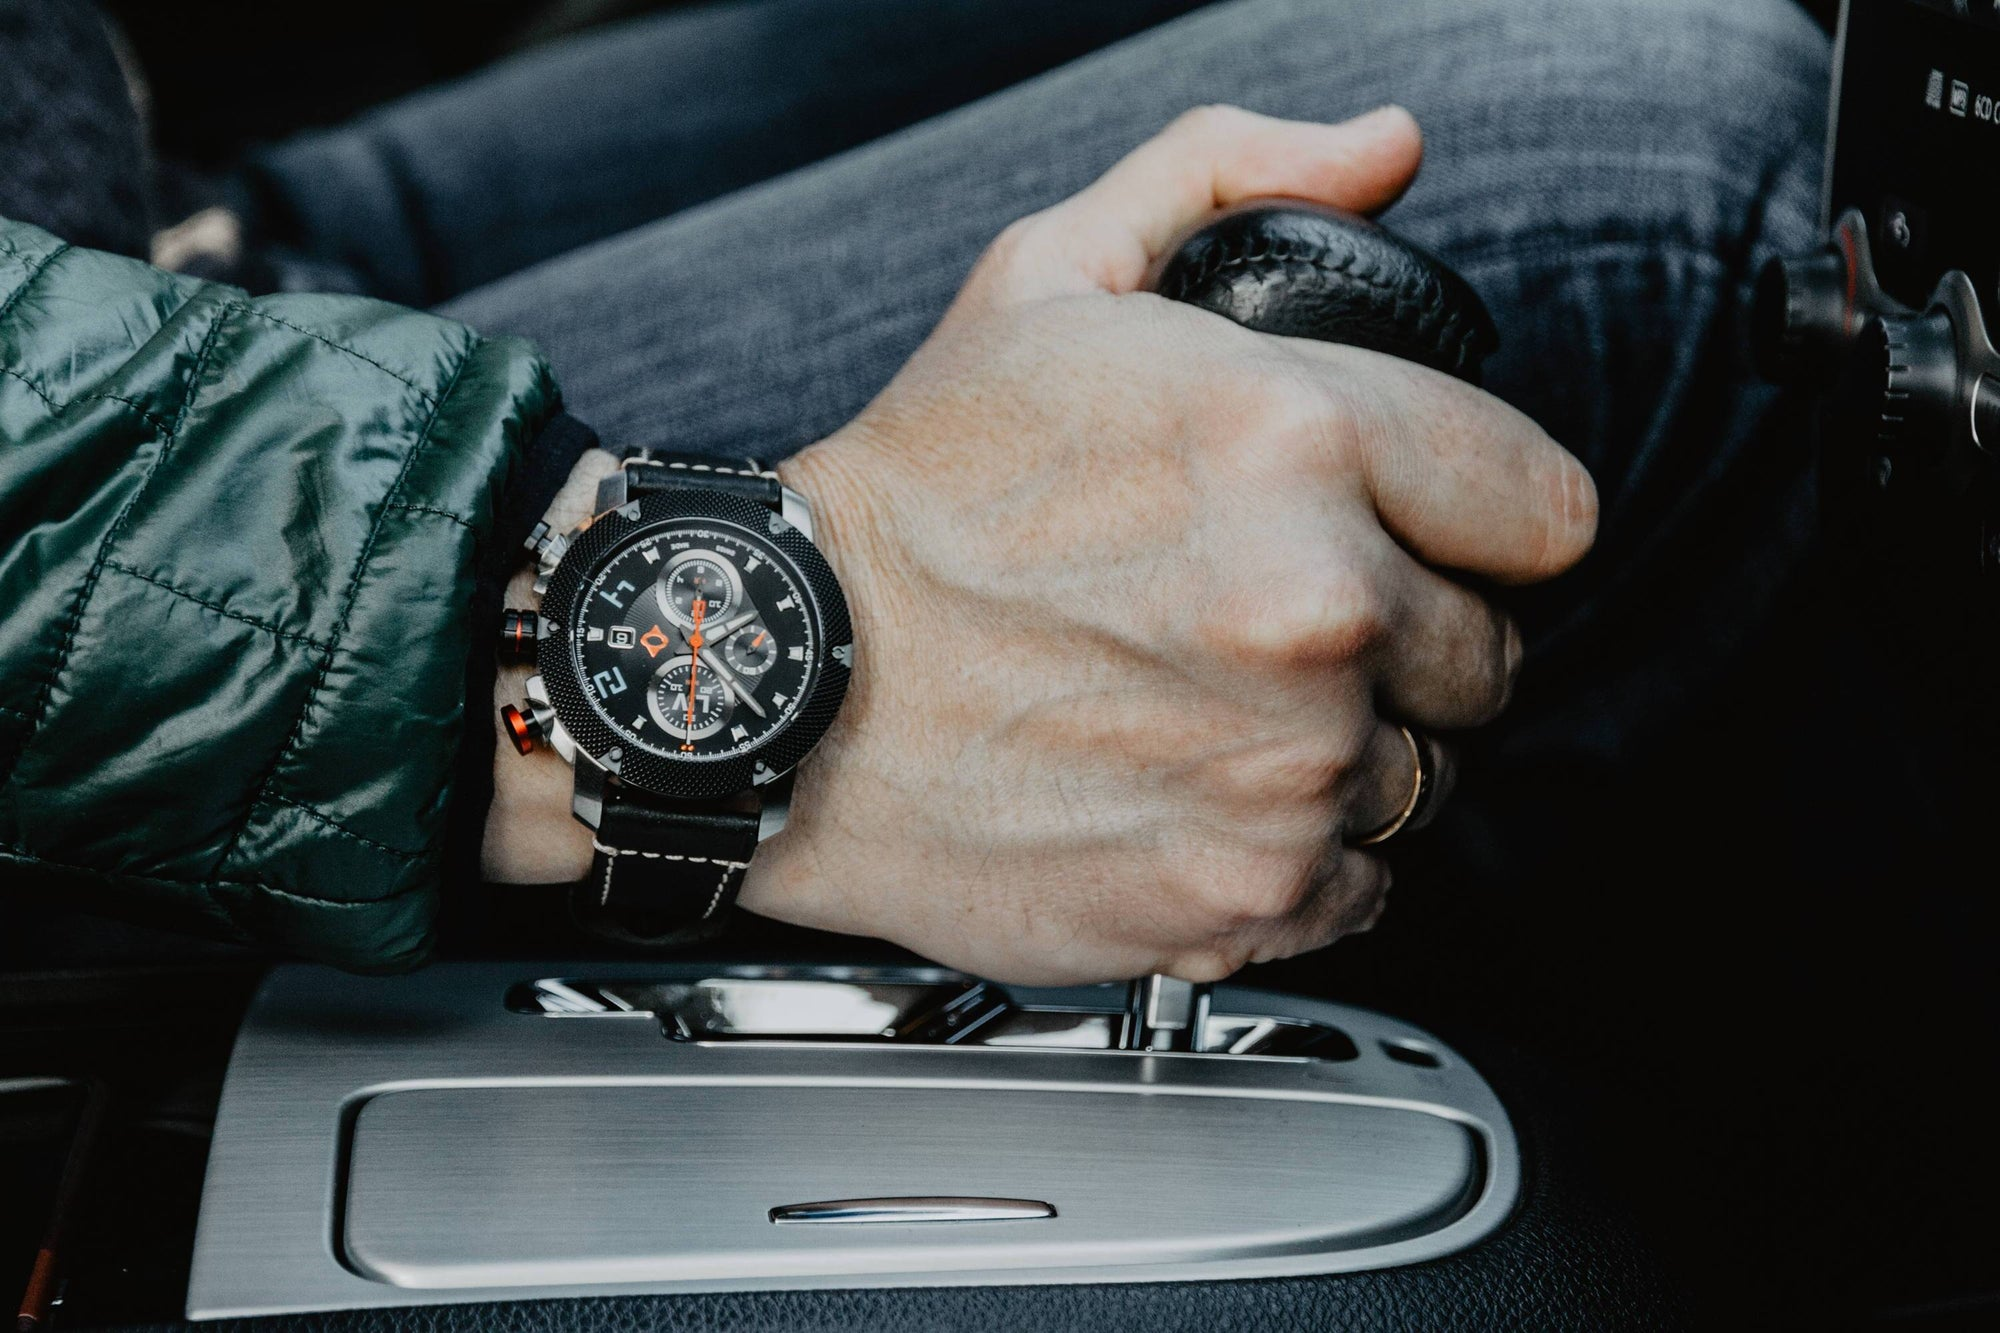 Fast Cars & Racy Watches